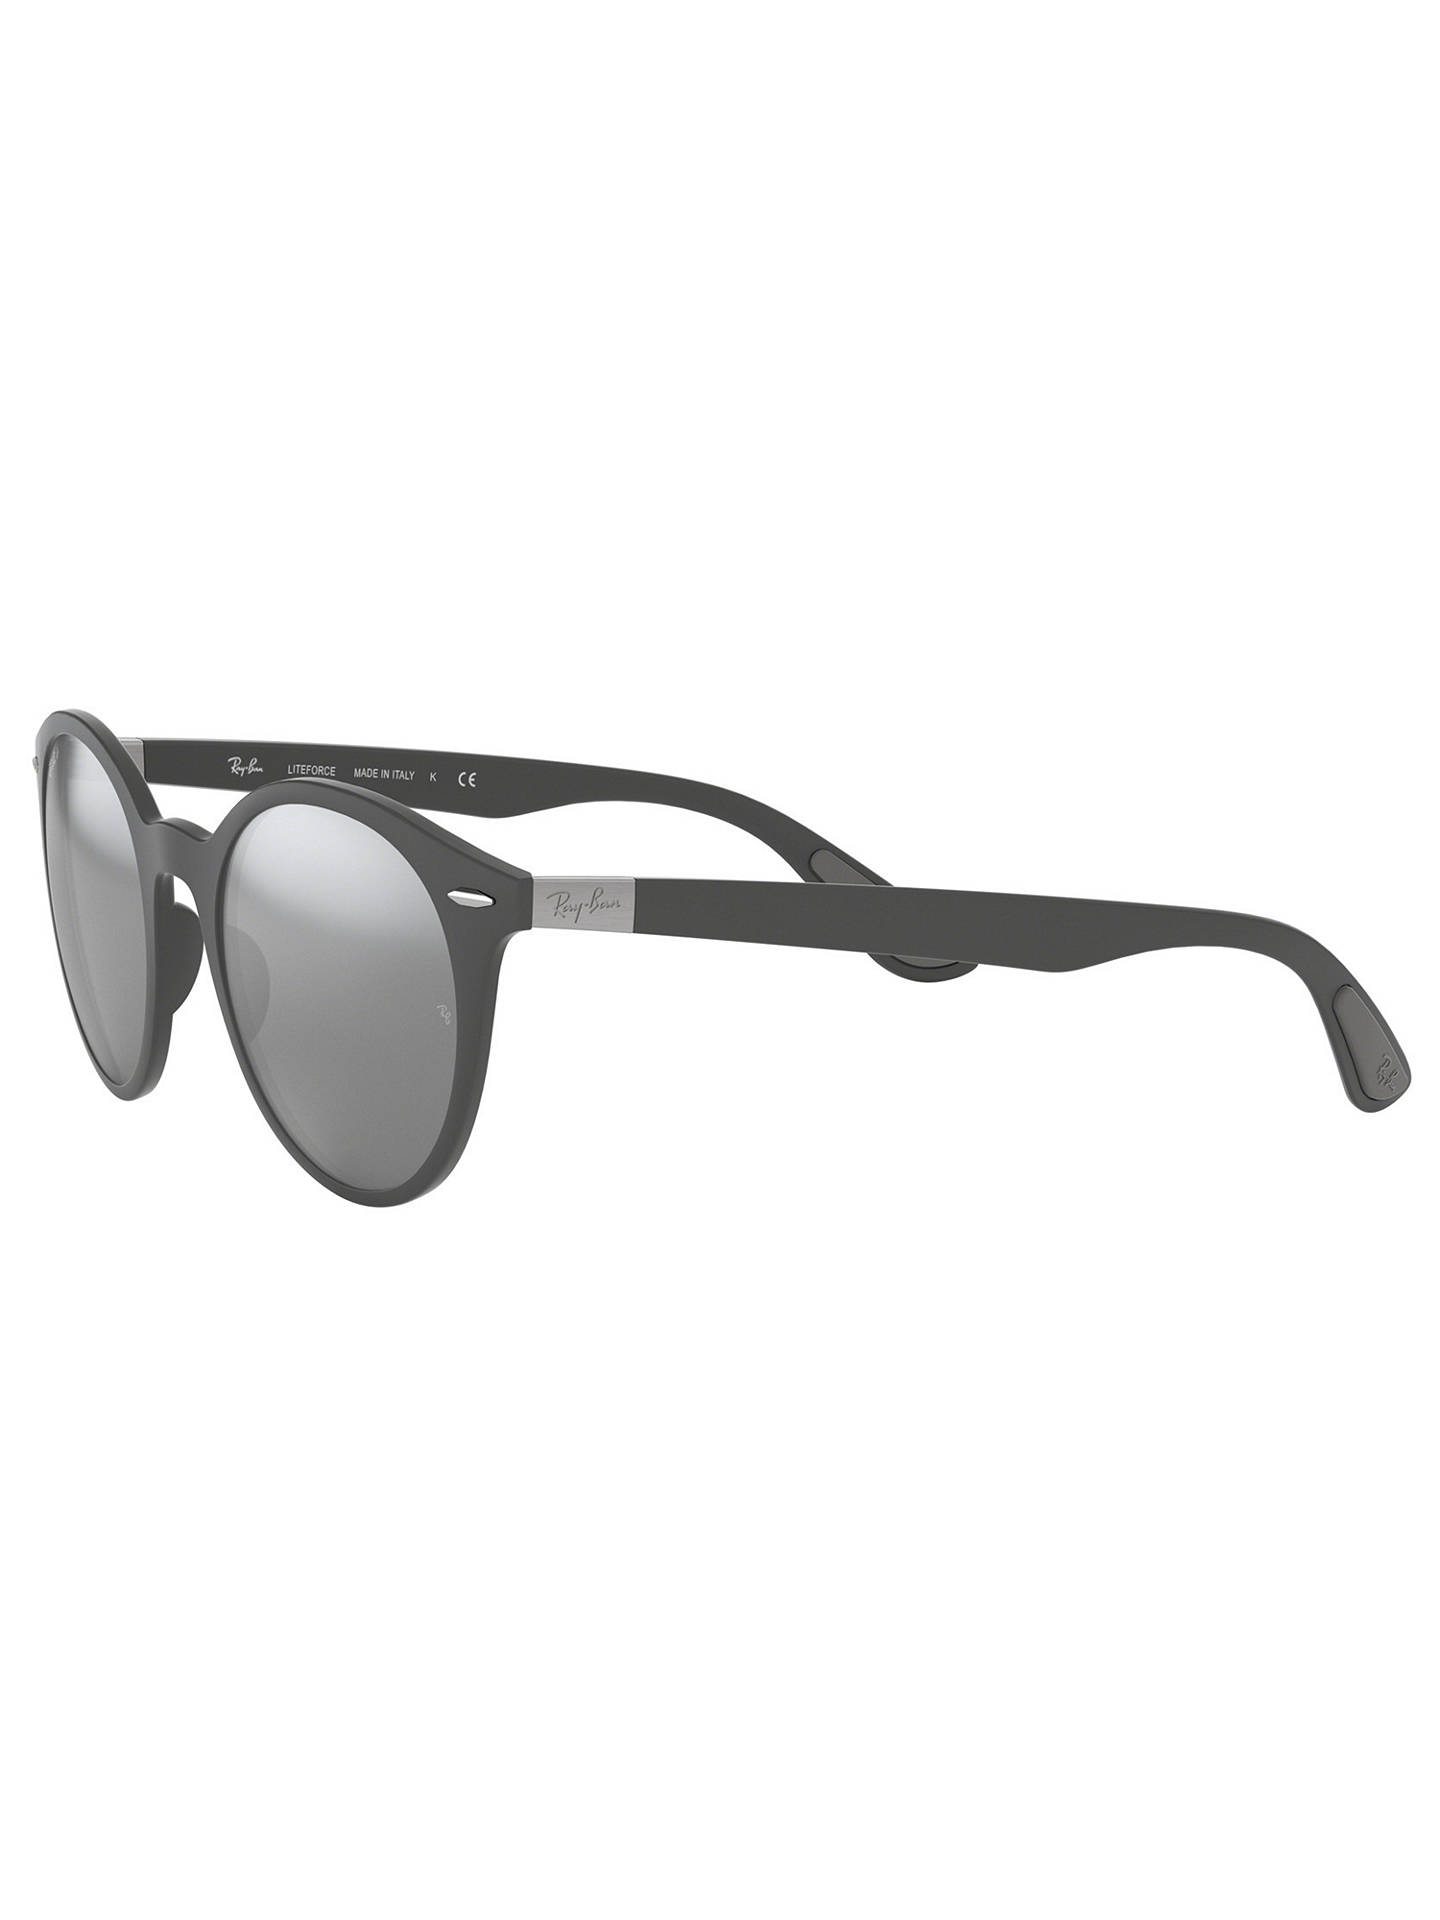 BuyRay-Ban RB4296 Unisex Oval Sunglasses, Grey/Mirror Grey Online at johnlewis.com